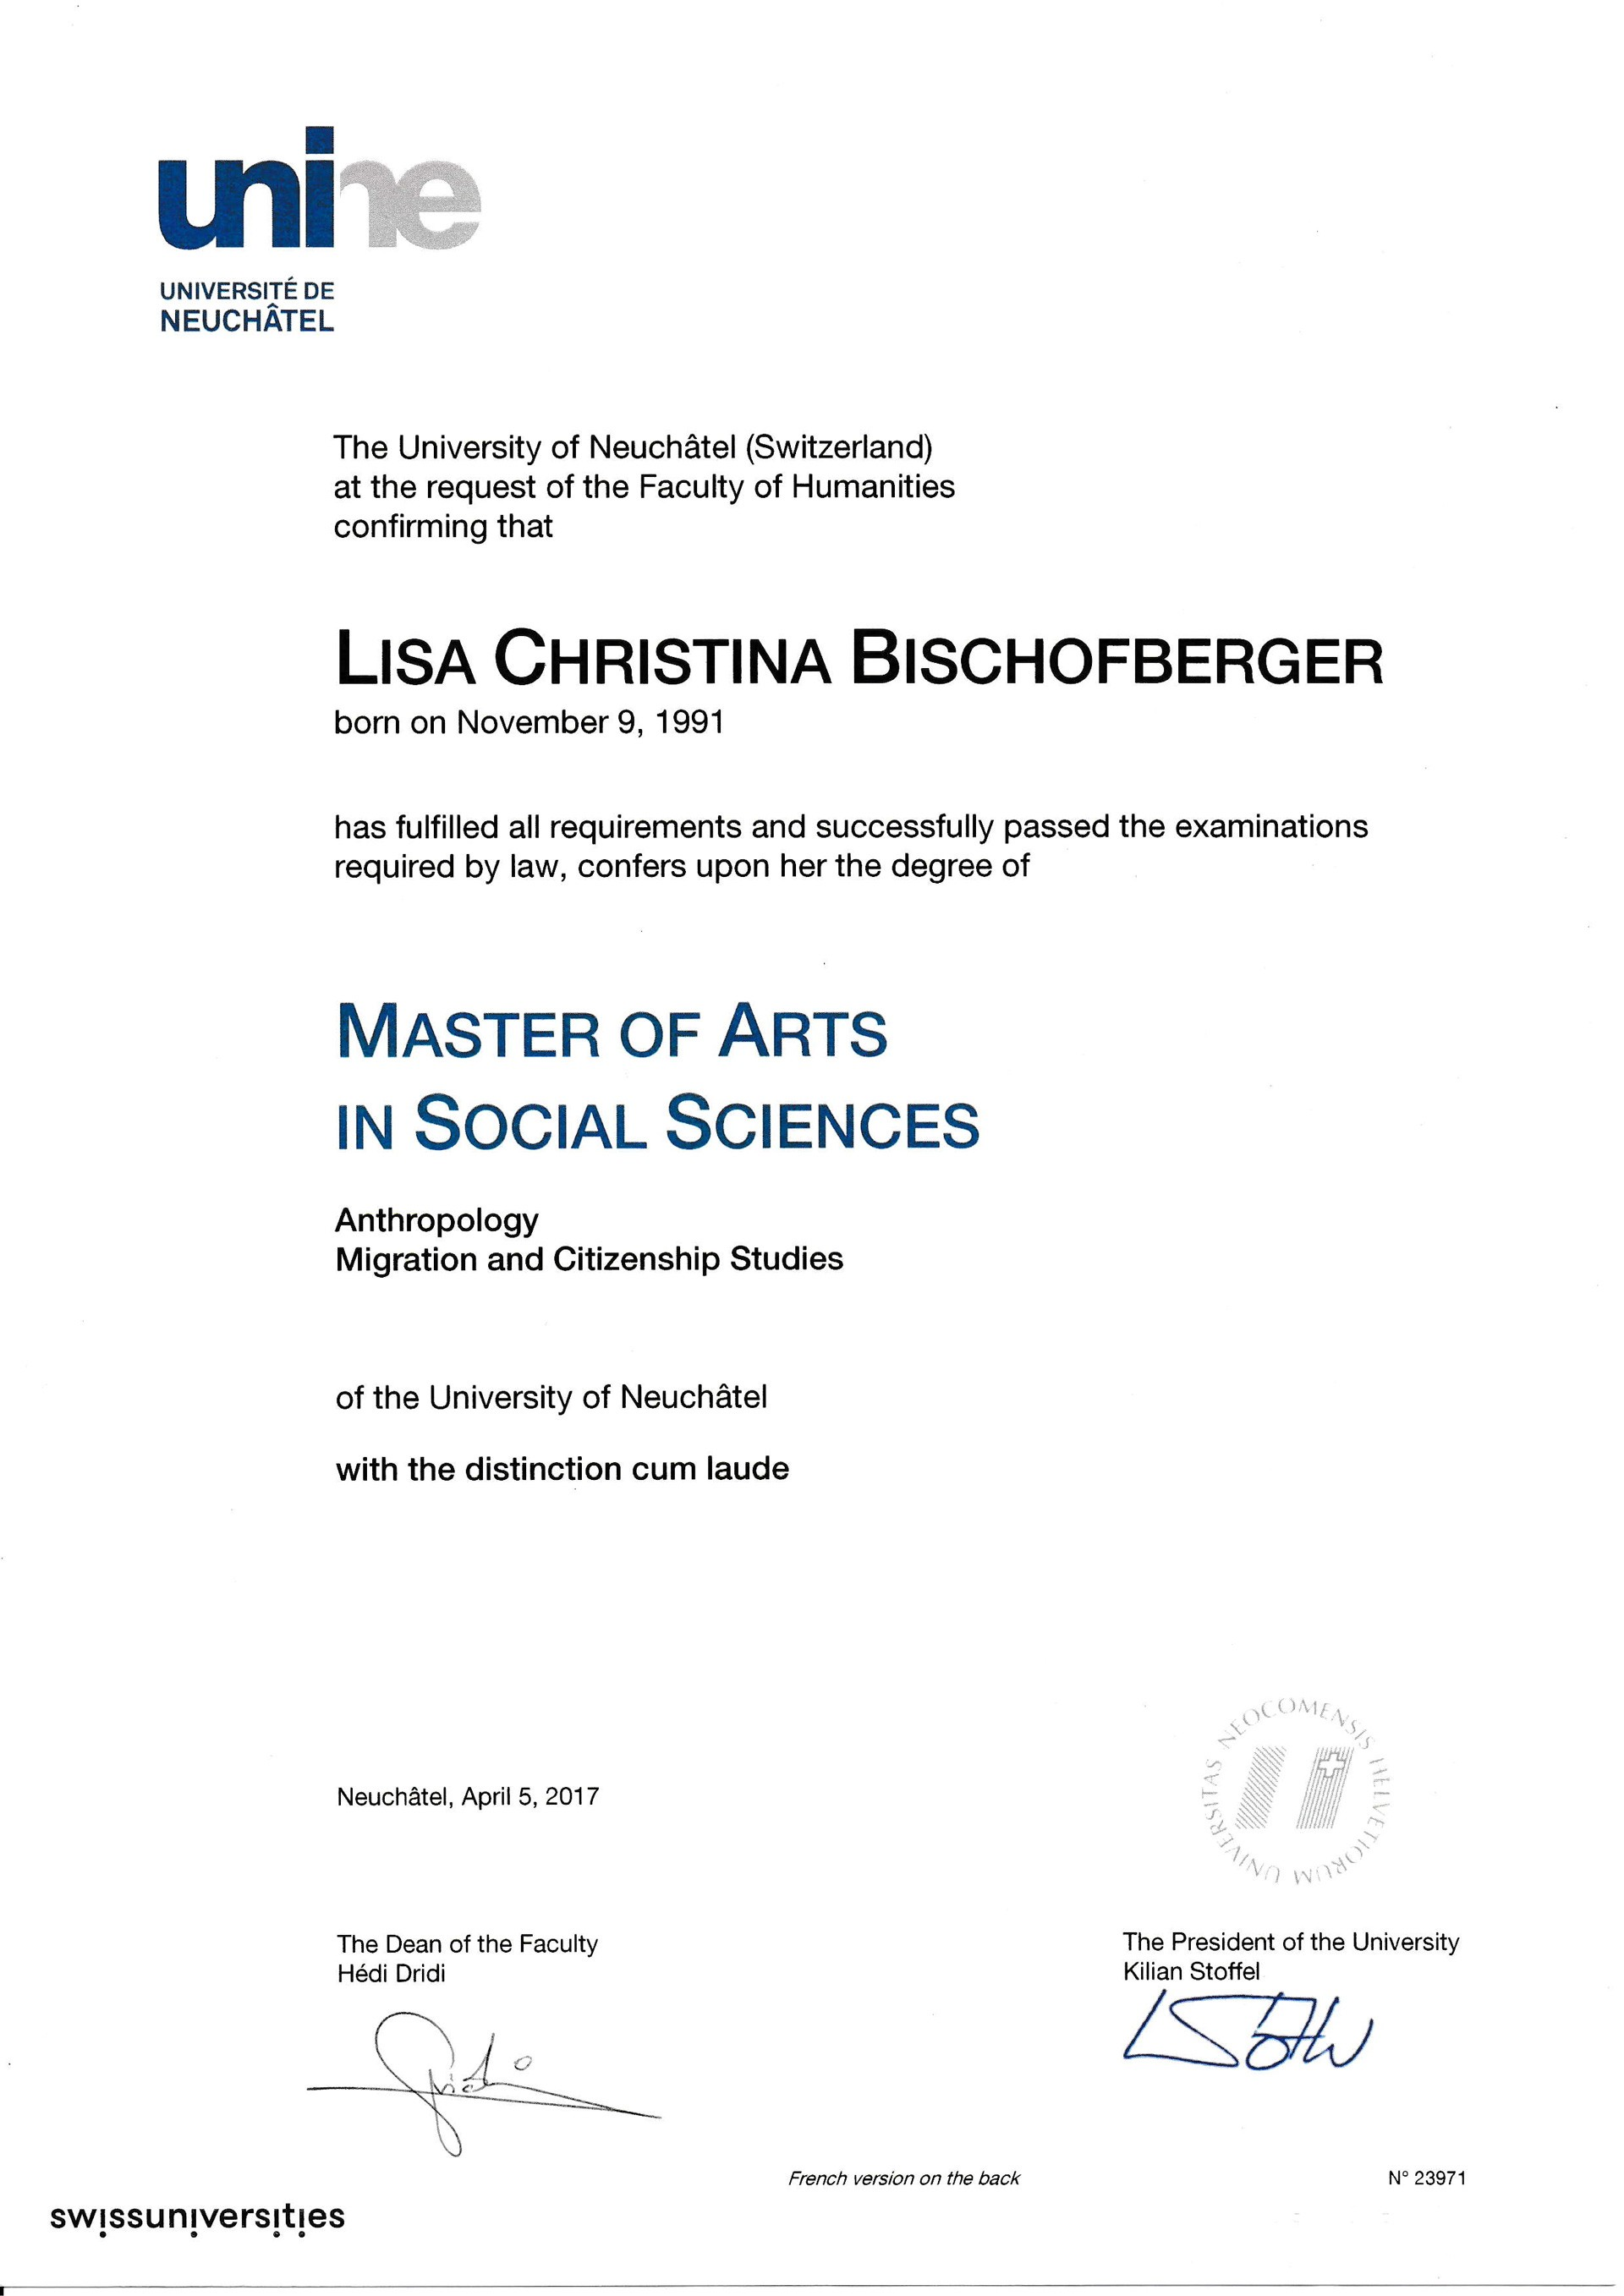 Master of Arts in Social Sciences - Lisa Filipe